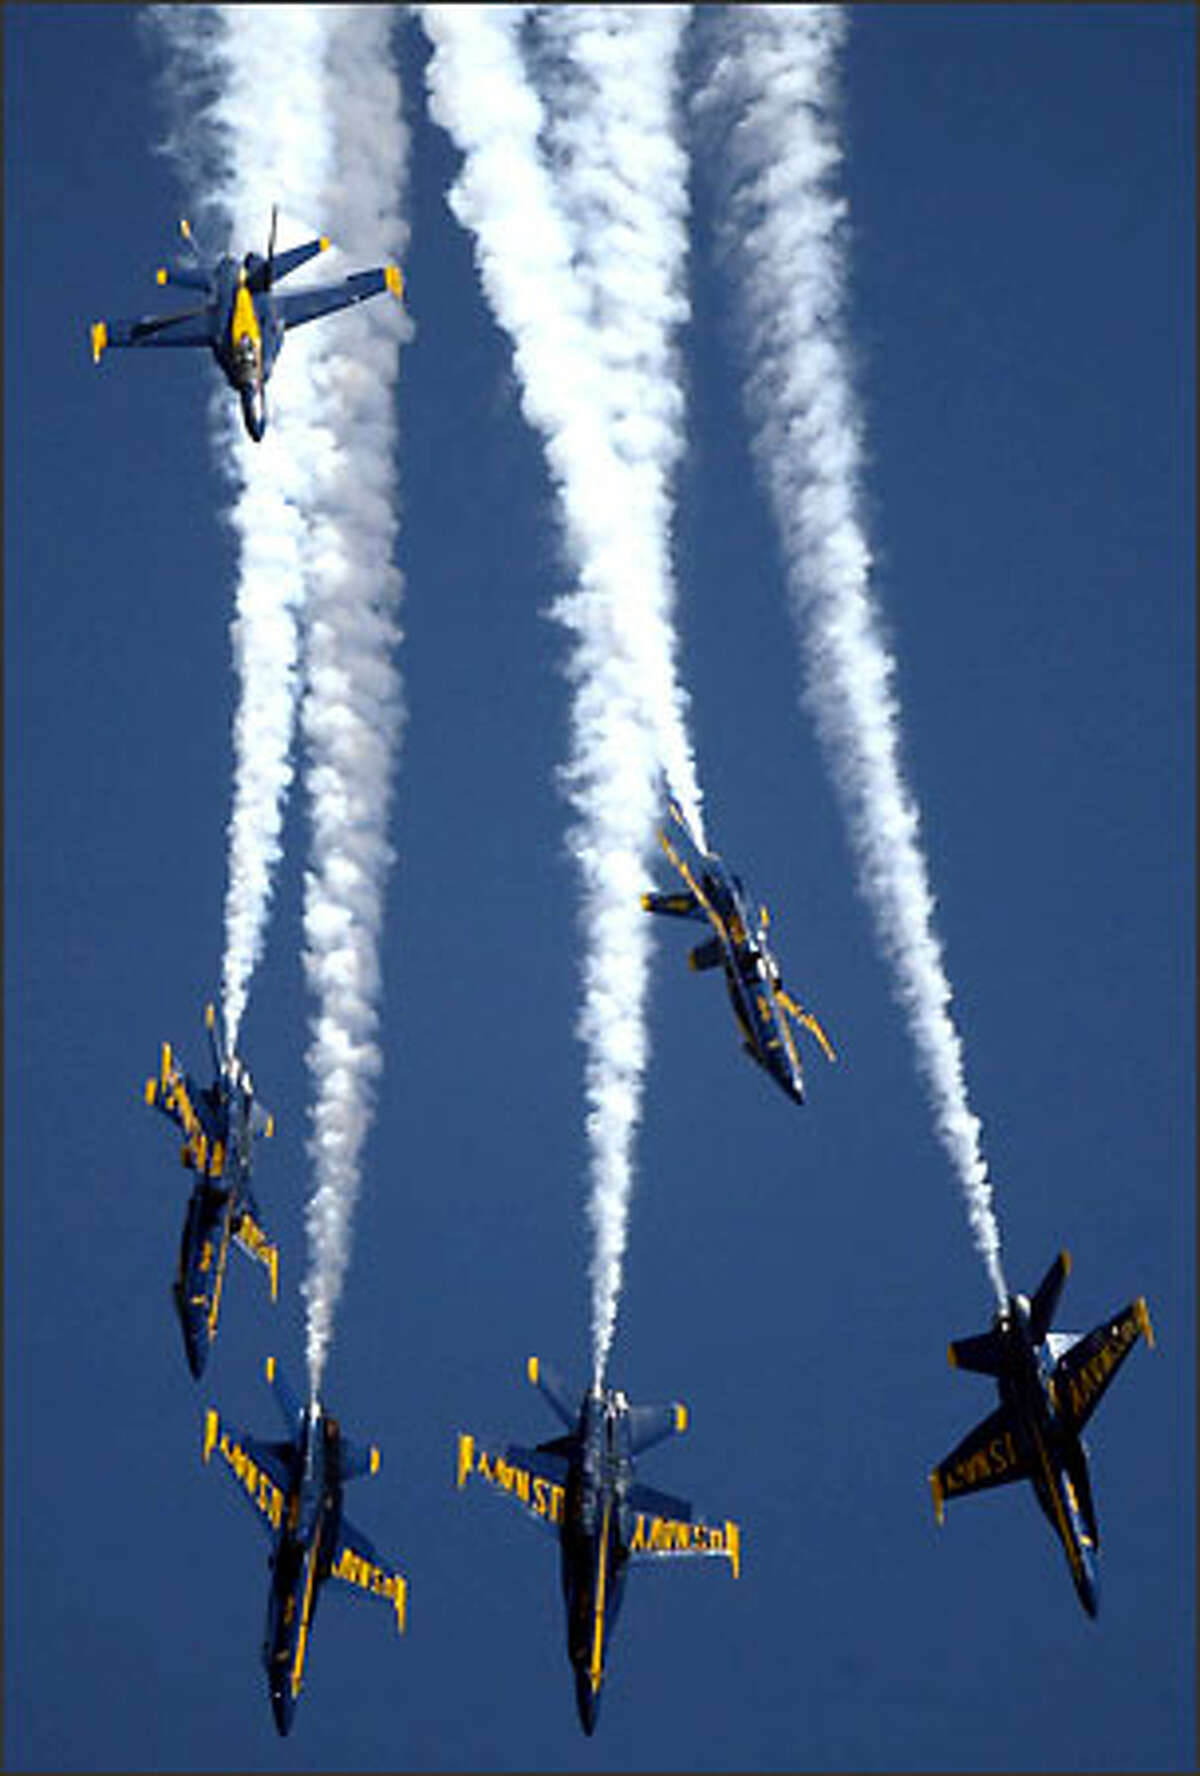 The U.S. Navy's Blue Angels precision aerobatics team heads straight down toward Lake Washington at Seafair.